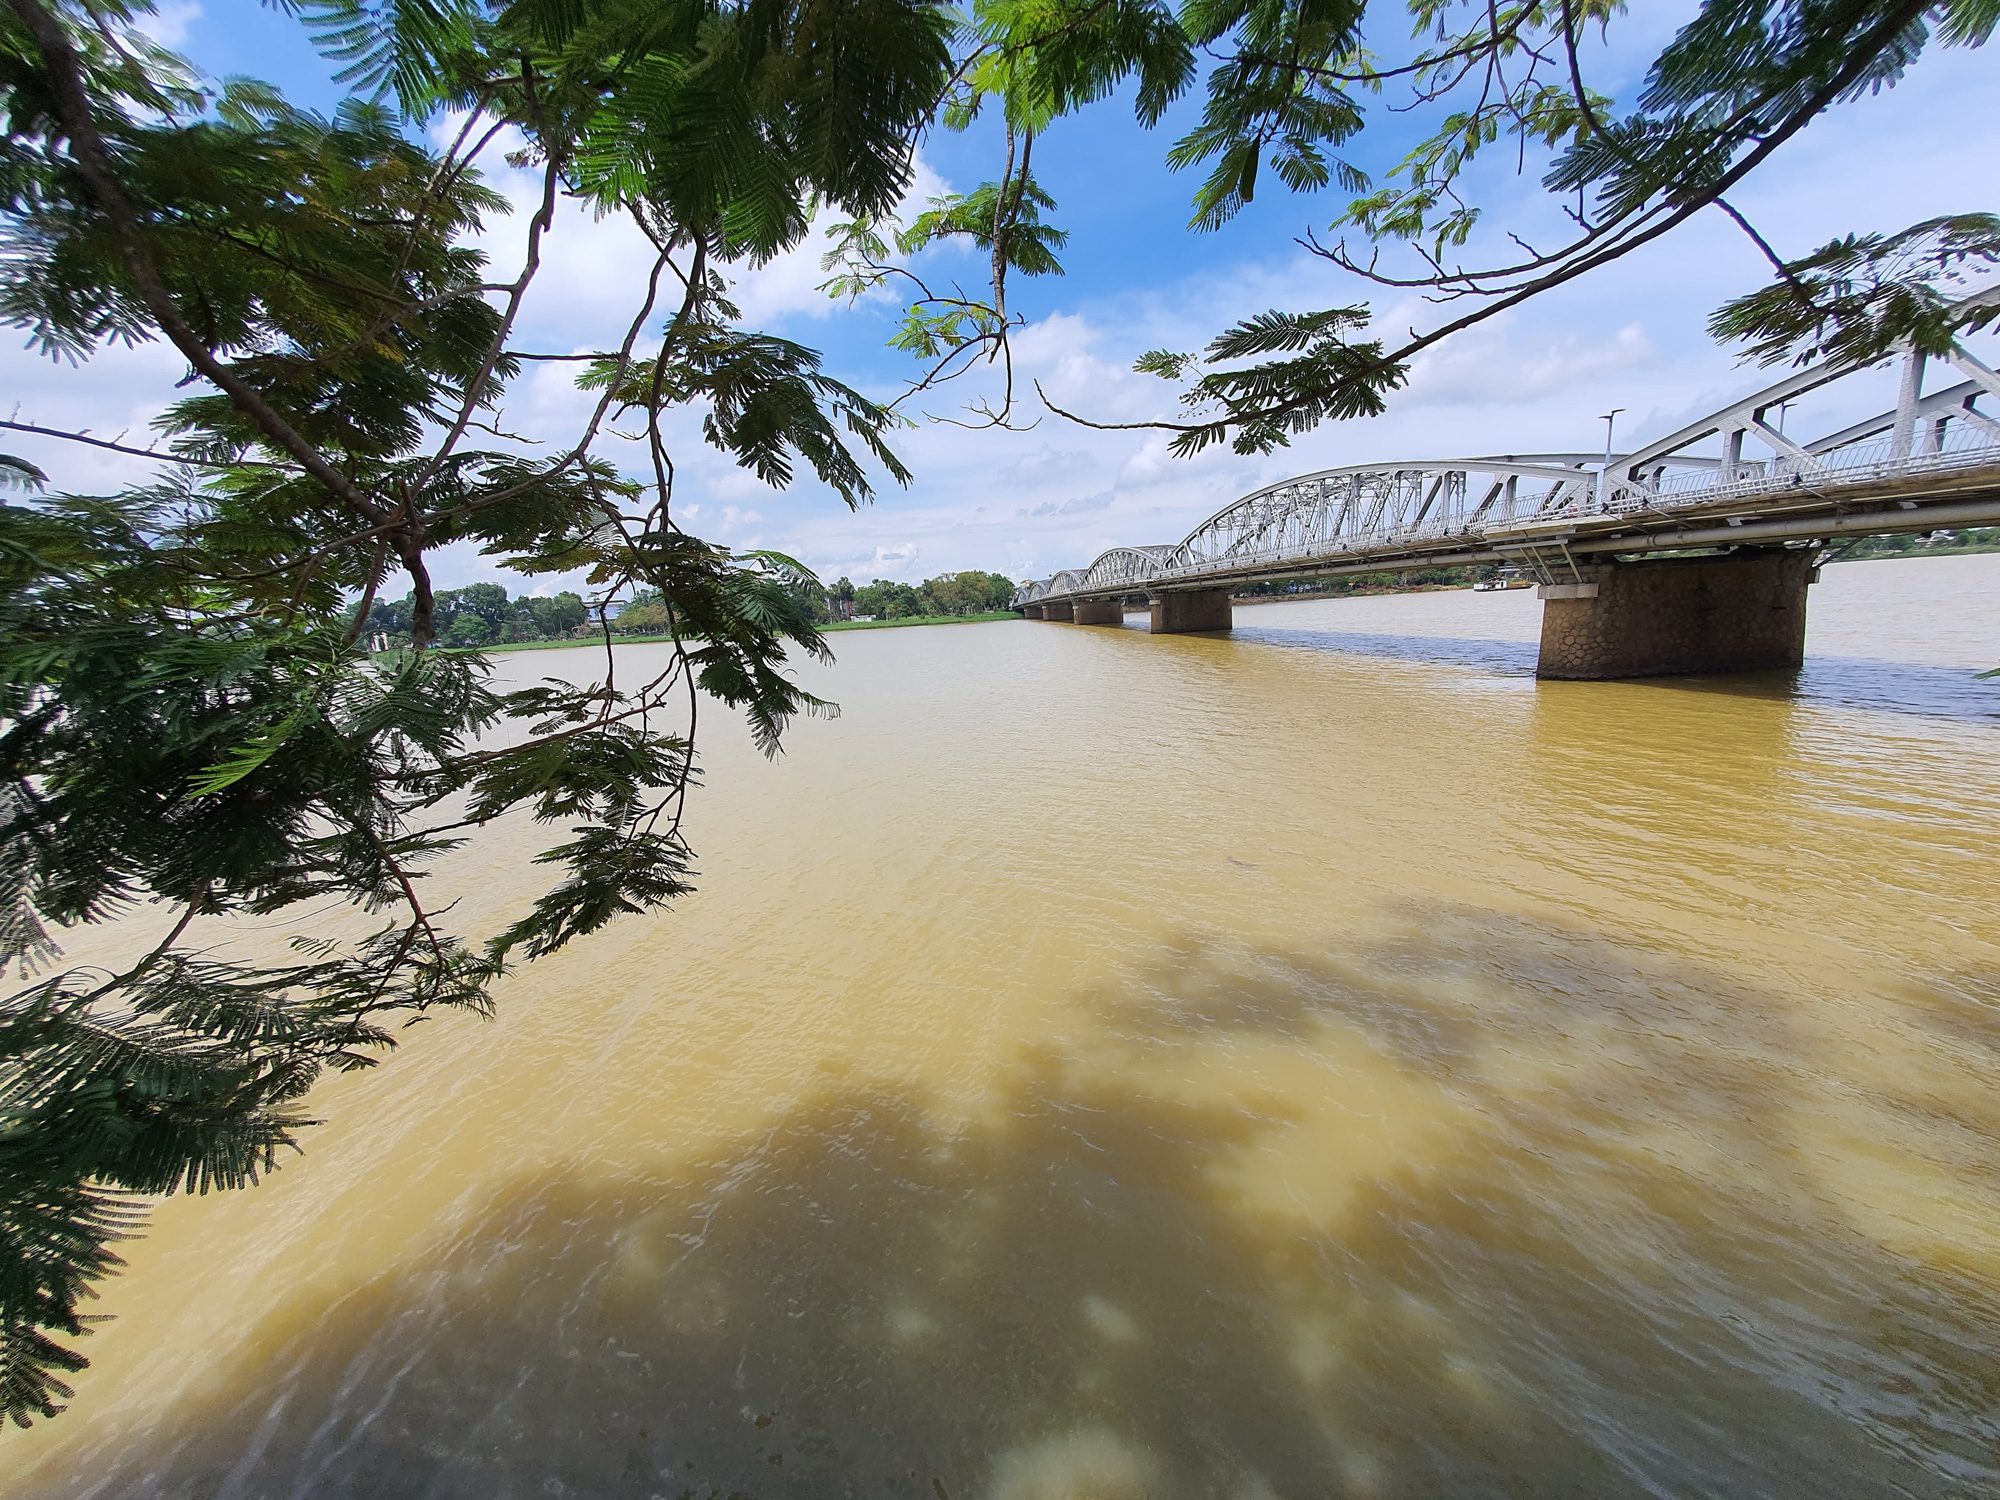 Iconic Huong River turns yellow in central Vietnam